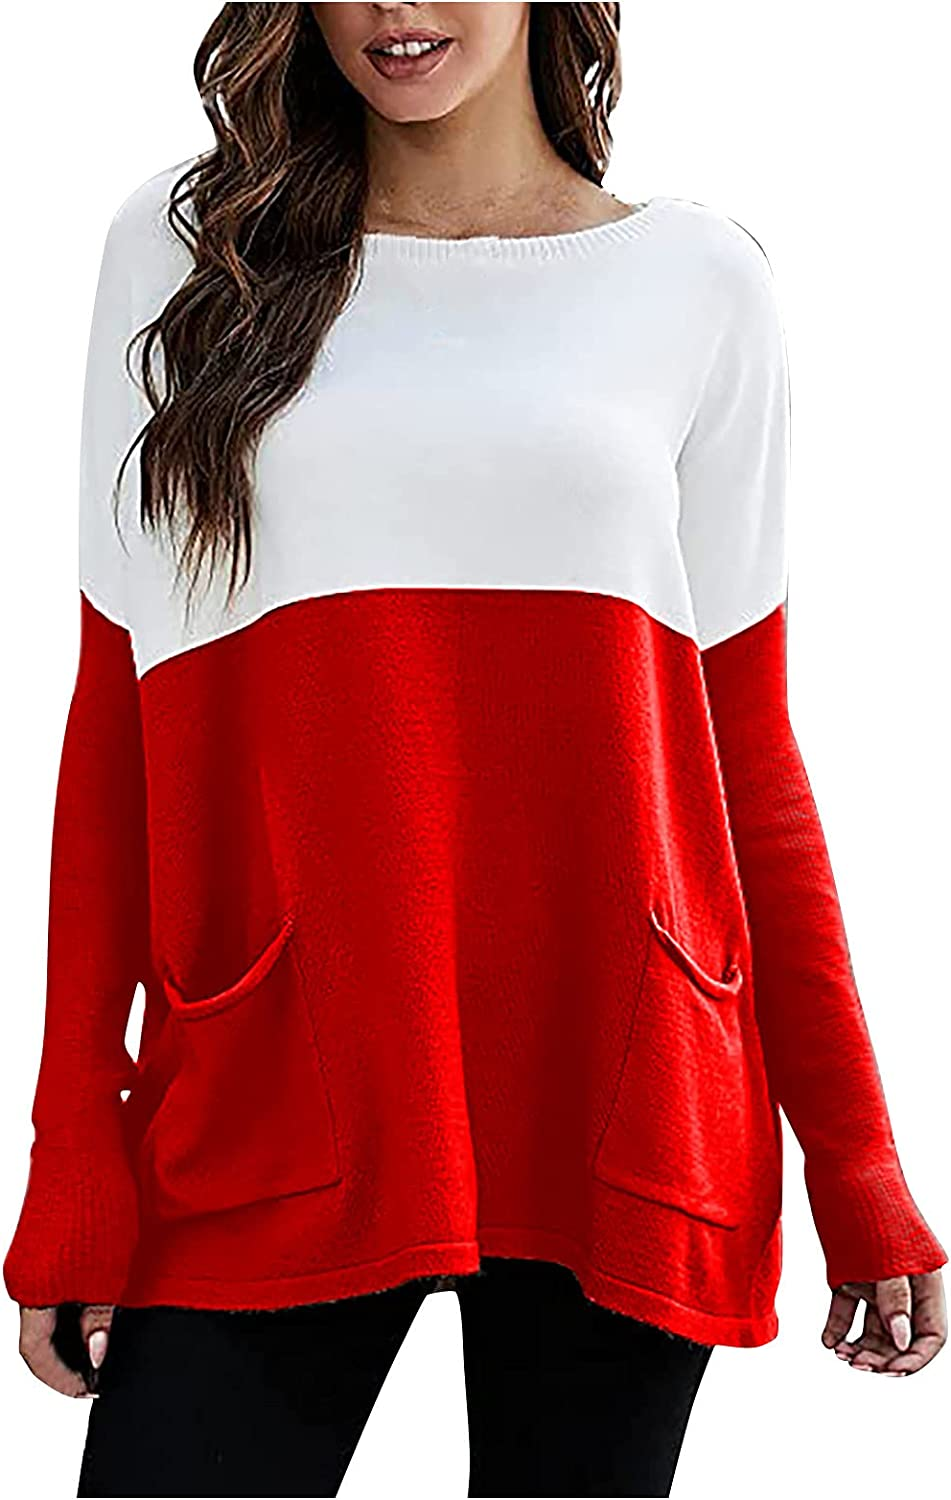 Sweaters for Women Loose Knit Panel Shirt Long Sleeve Round Neck Pullover